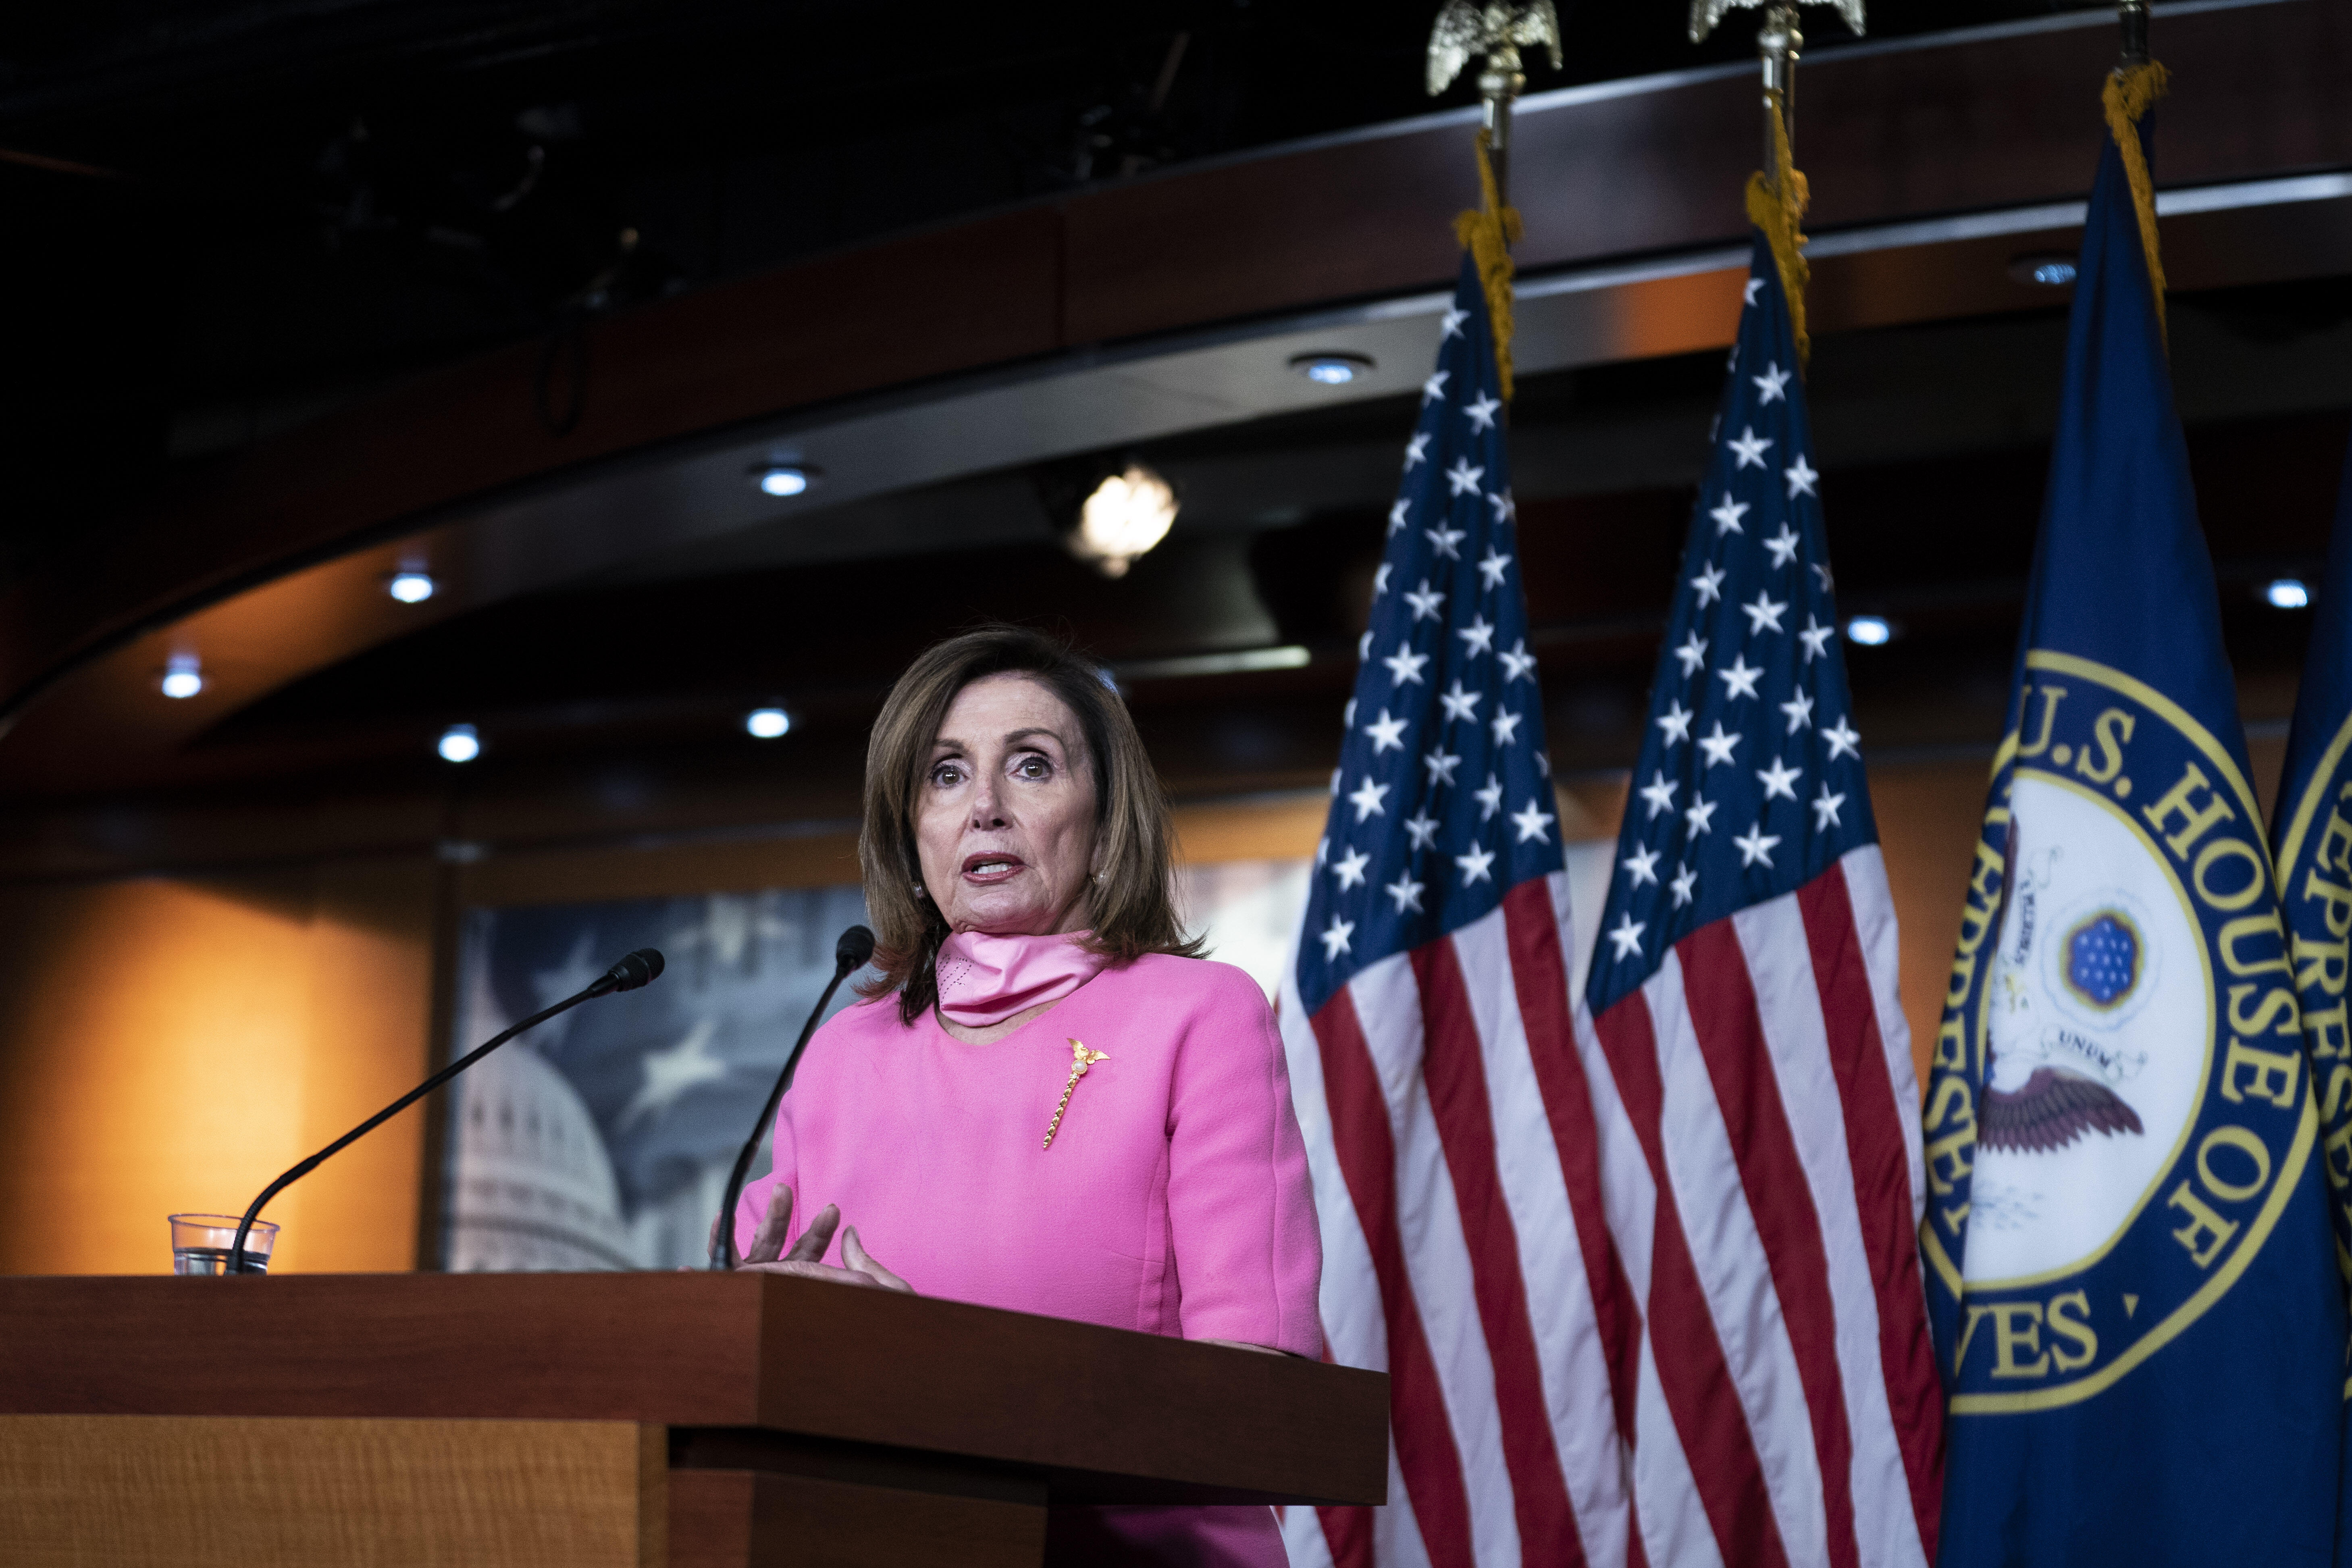 pelosi-gettyimages-1217526659